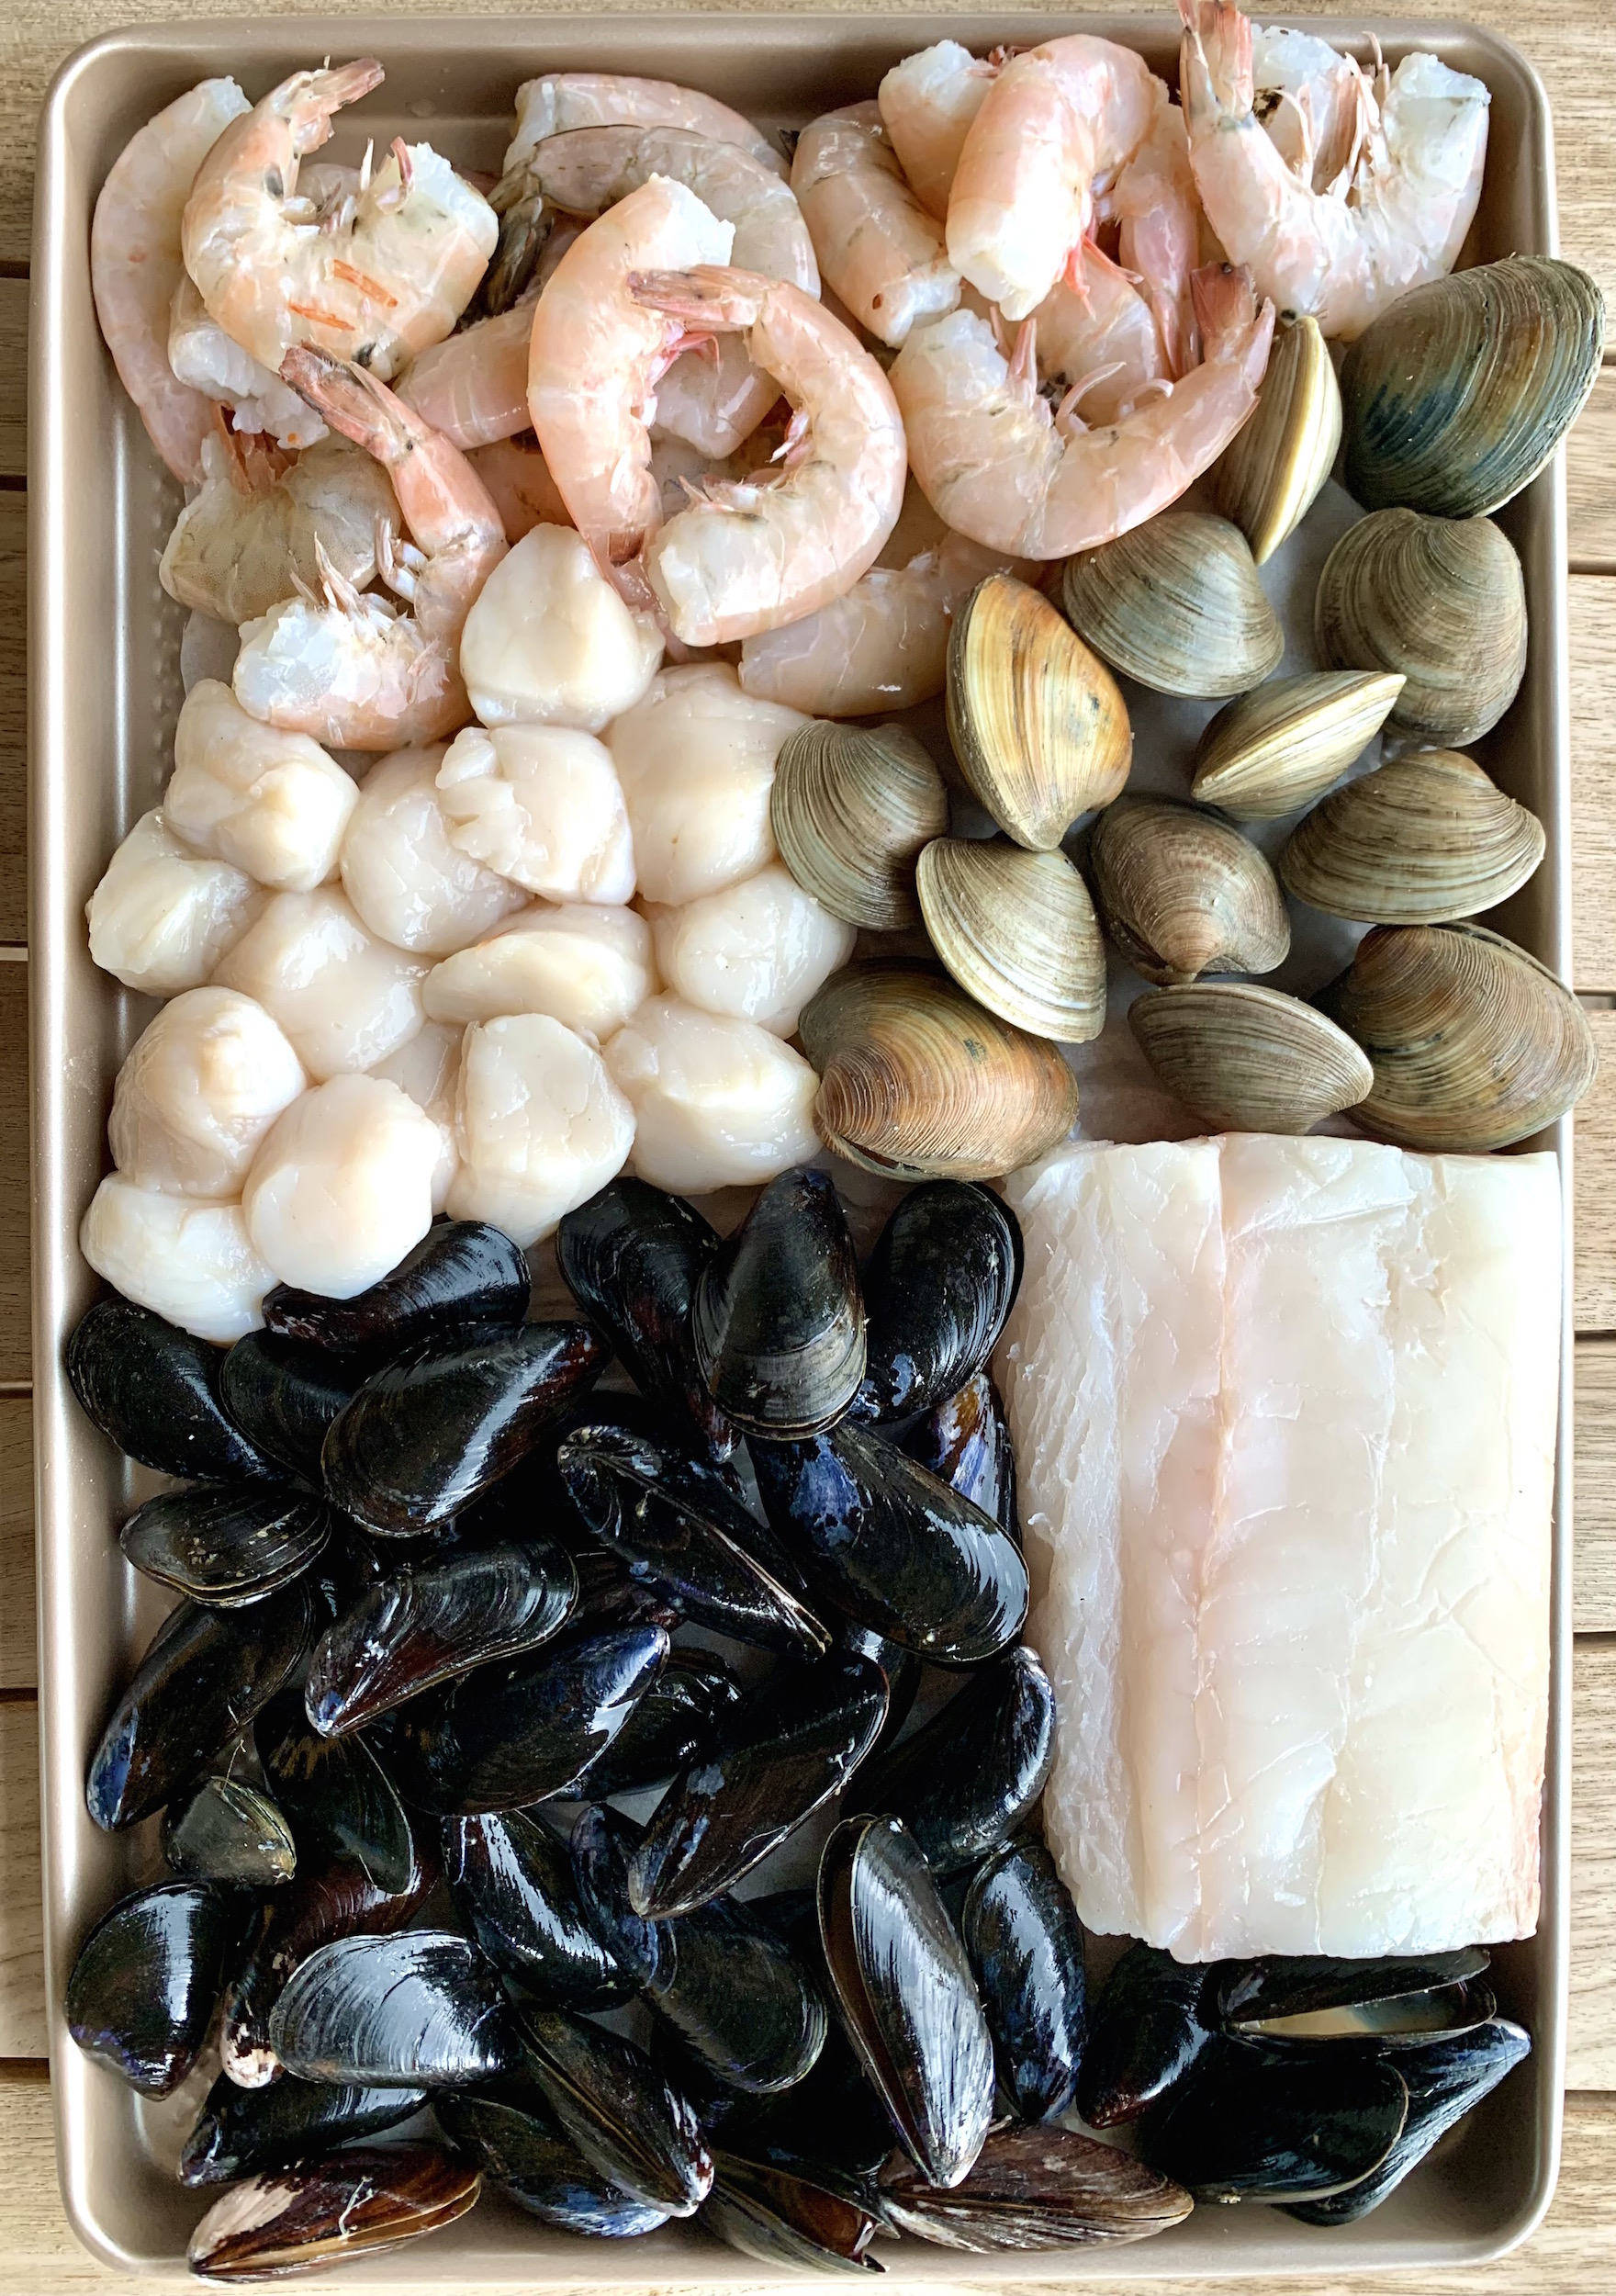 Raw shrimp, scallops, mussels, clams and halibut on a baking sheet